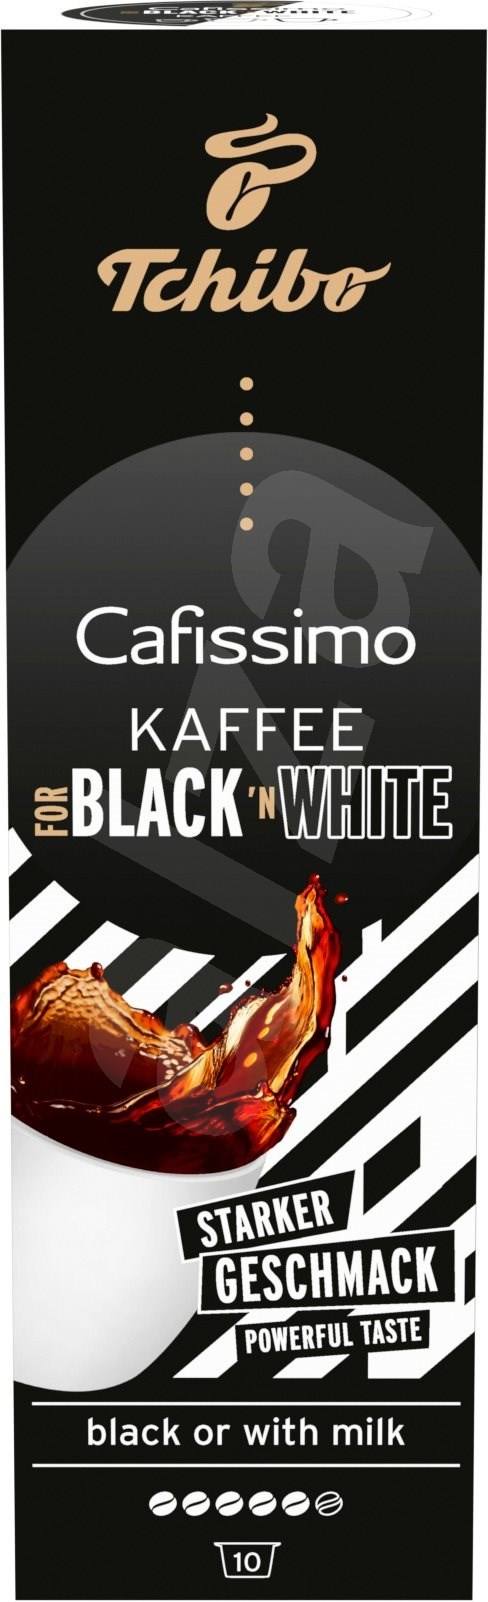 tchibo cafissimo black white coffee capsules. Black Bedroom Furniture Sets. Home Design Ideas